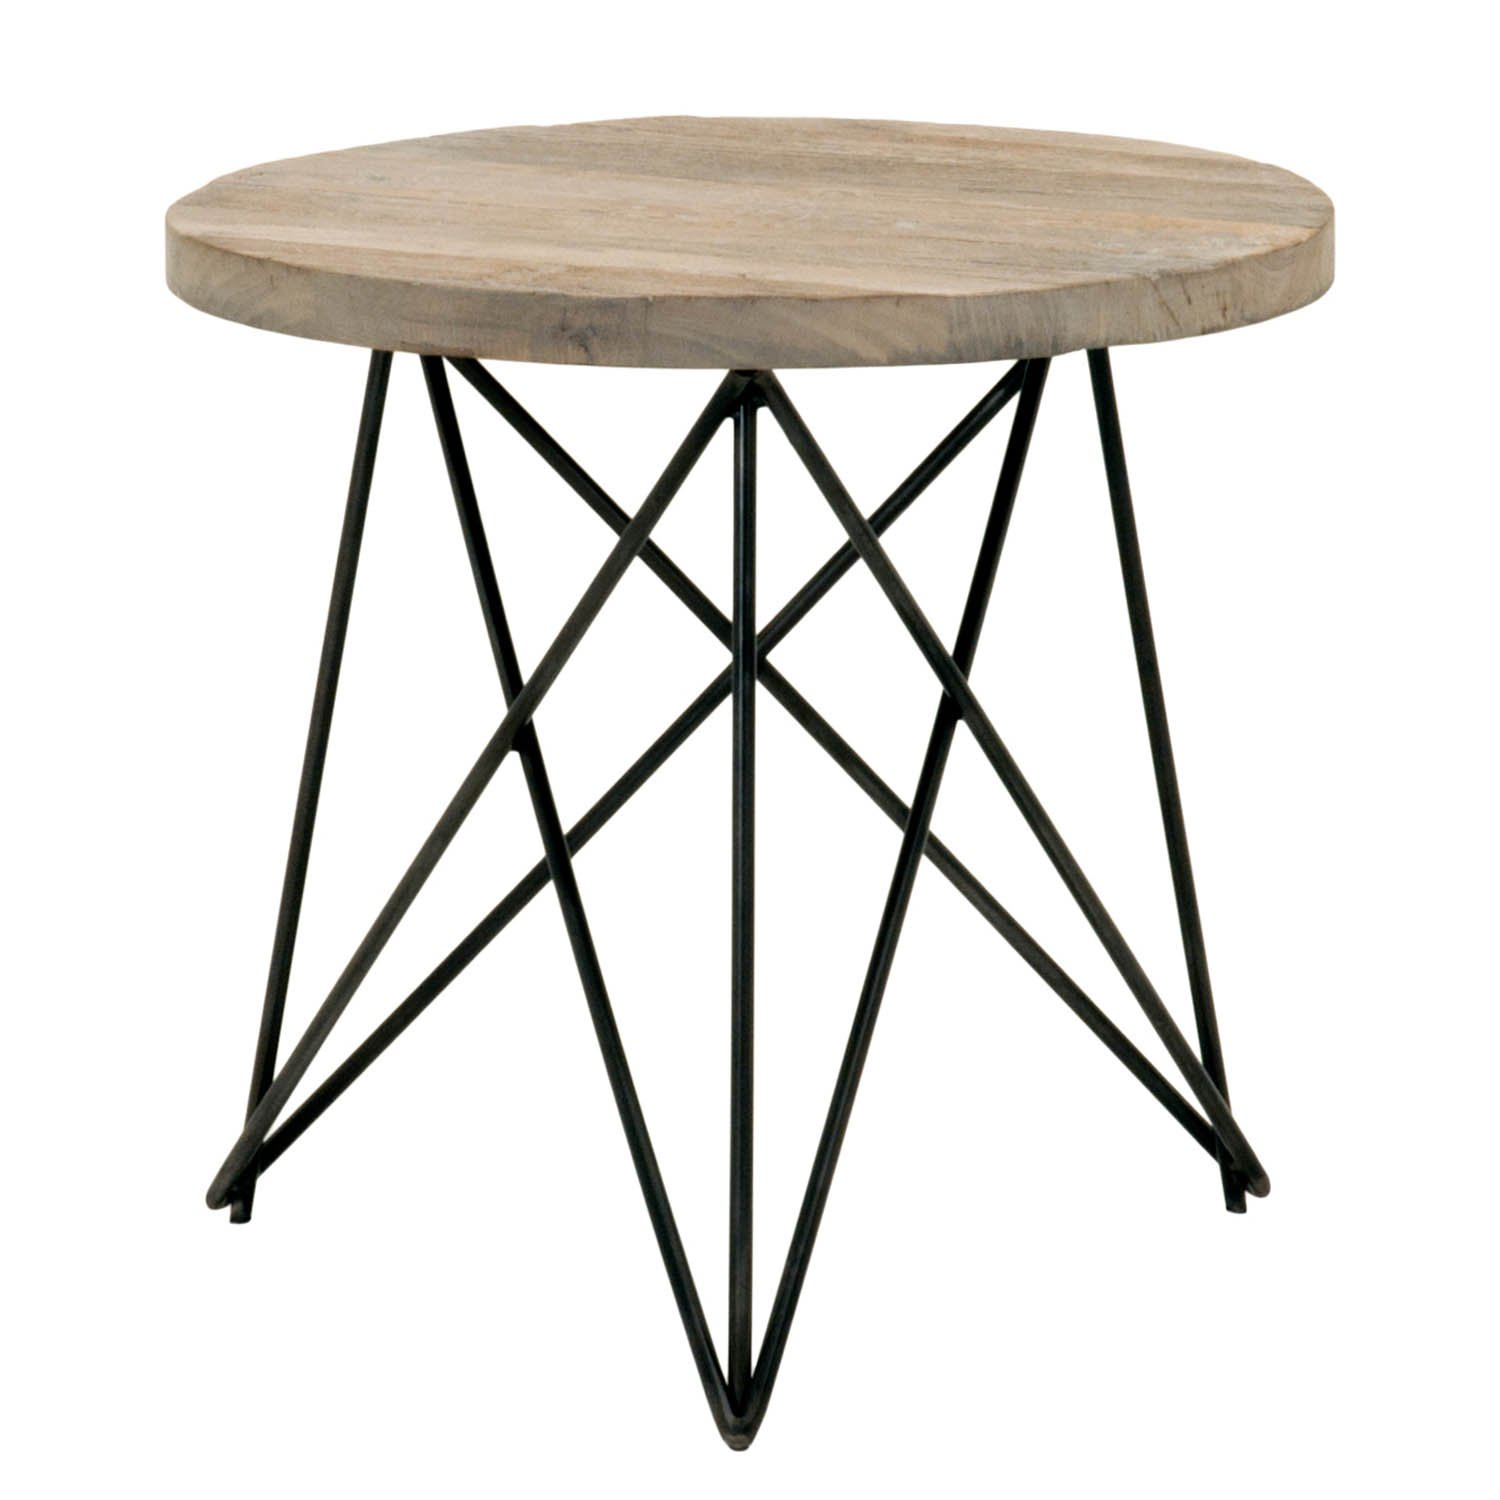 canvas accent table turner and jacksonville interior design furnishings smoke gray fold away desk kitchen black bar height sunroom furniture wooden narrow hallway console cabinet